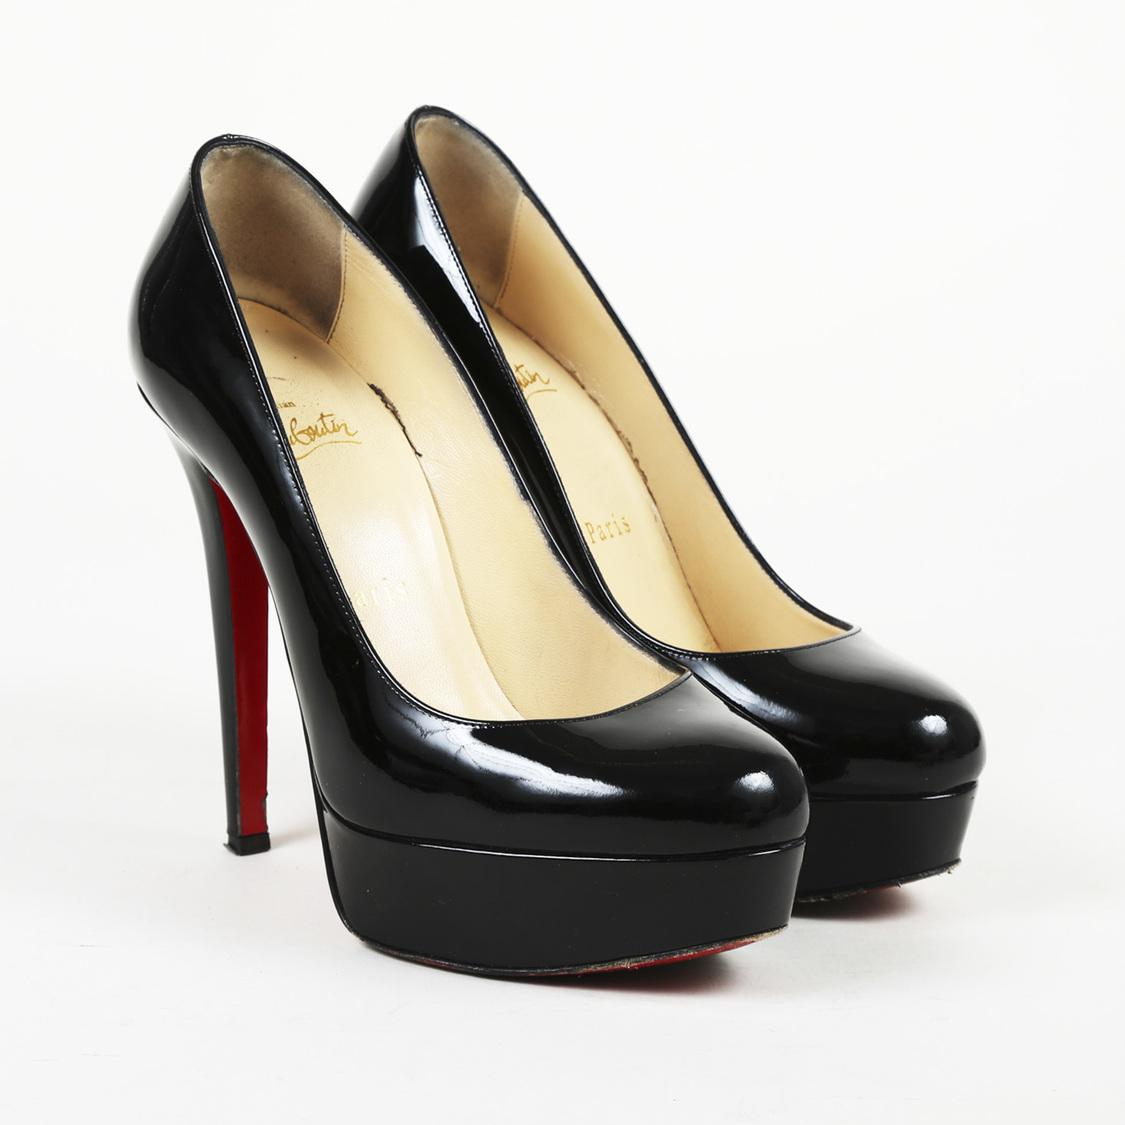 8c48f2b60 Lyst - Christian Louboutin Patent Leather